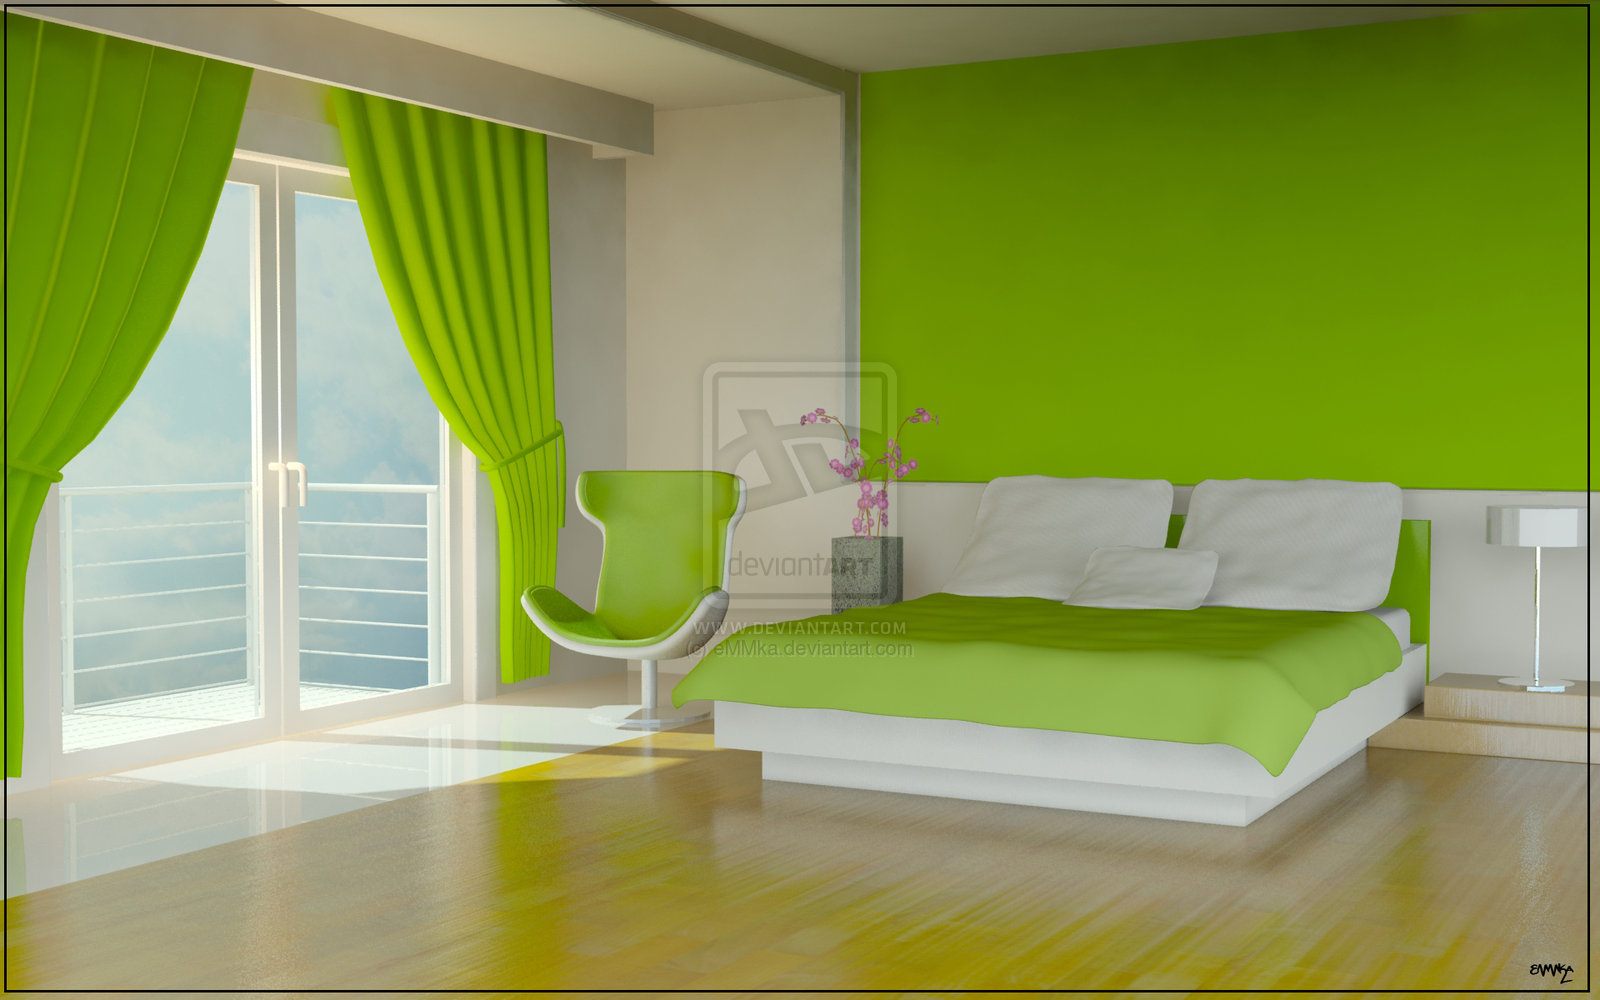 Muebles y decoraci n de interiores el color verde para for Bright green bedroom ideas